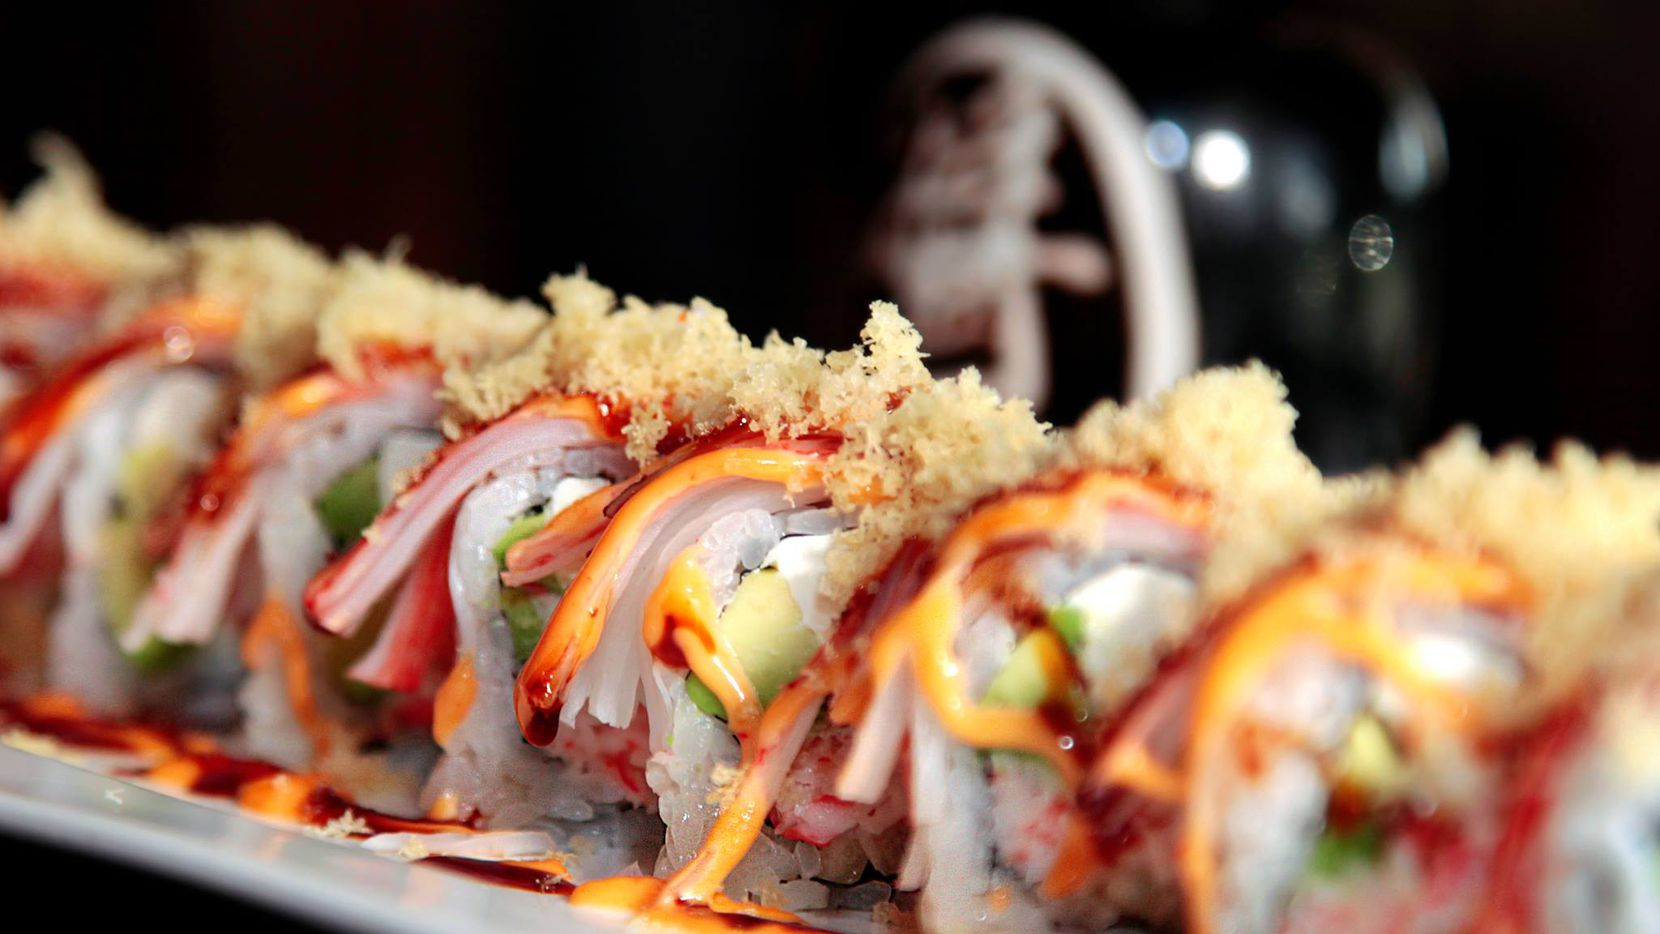 Sushi Sakana will open a second location soon in Southlake.